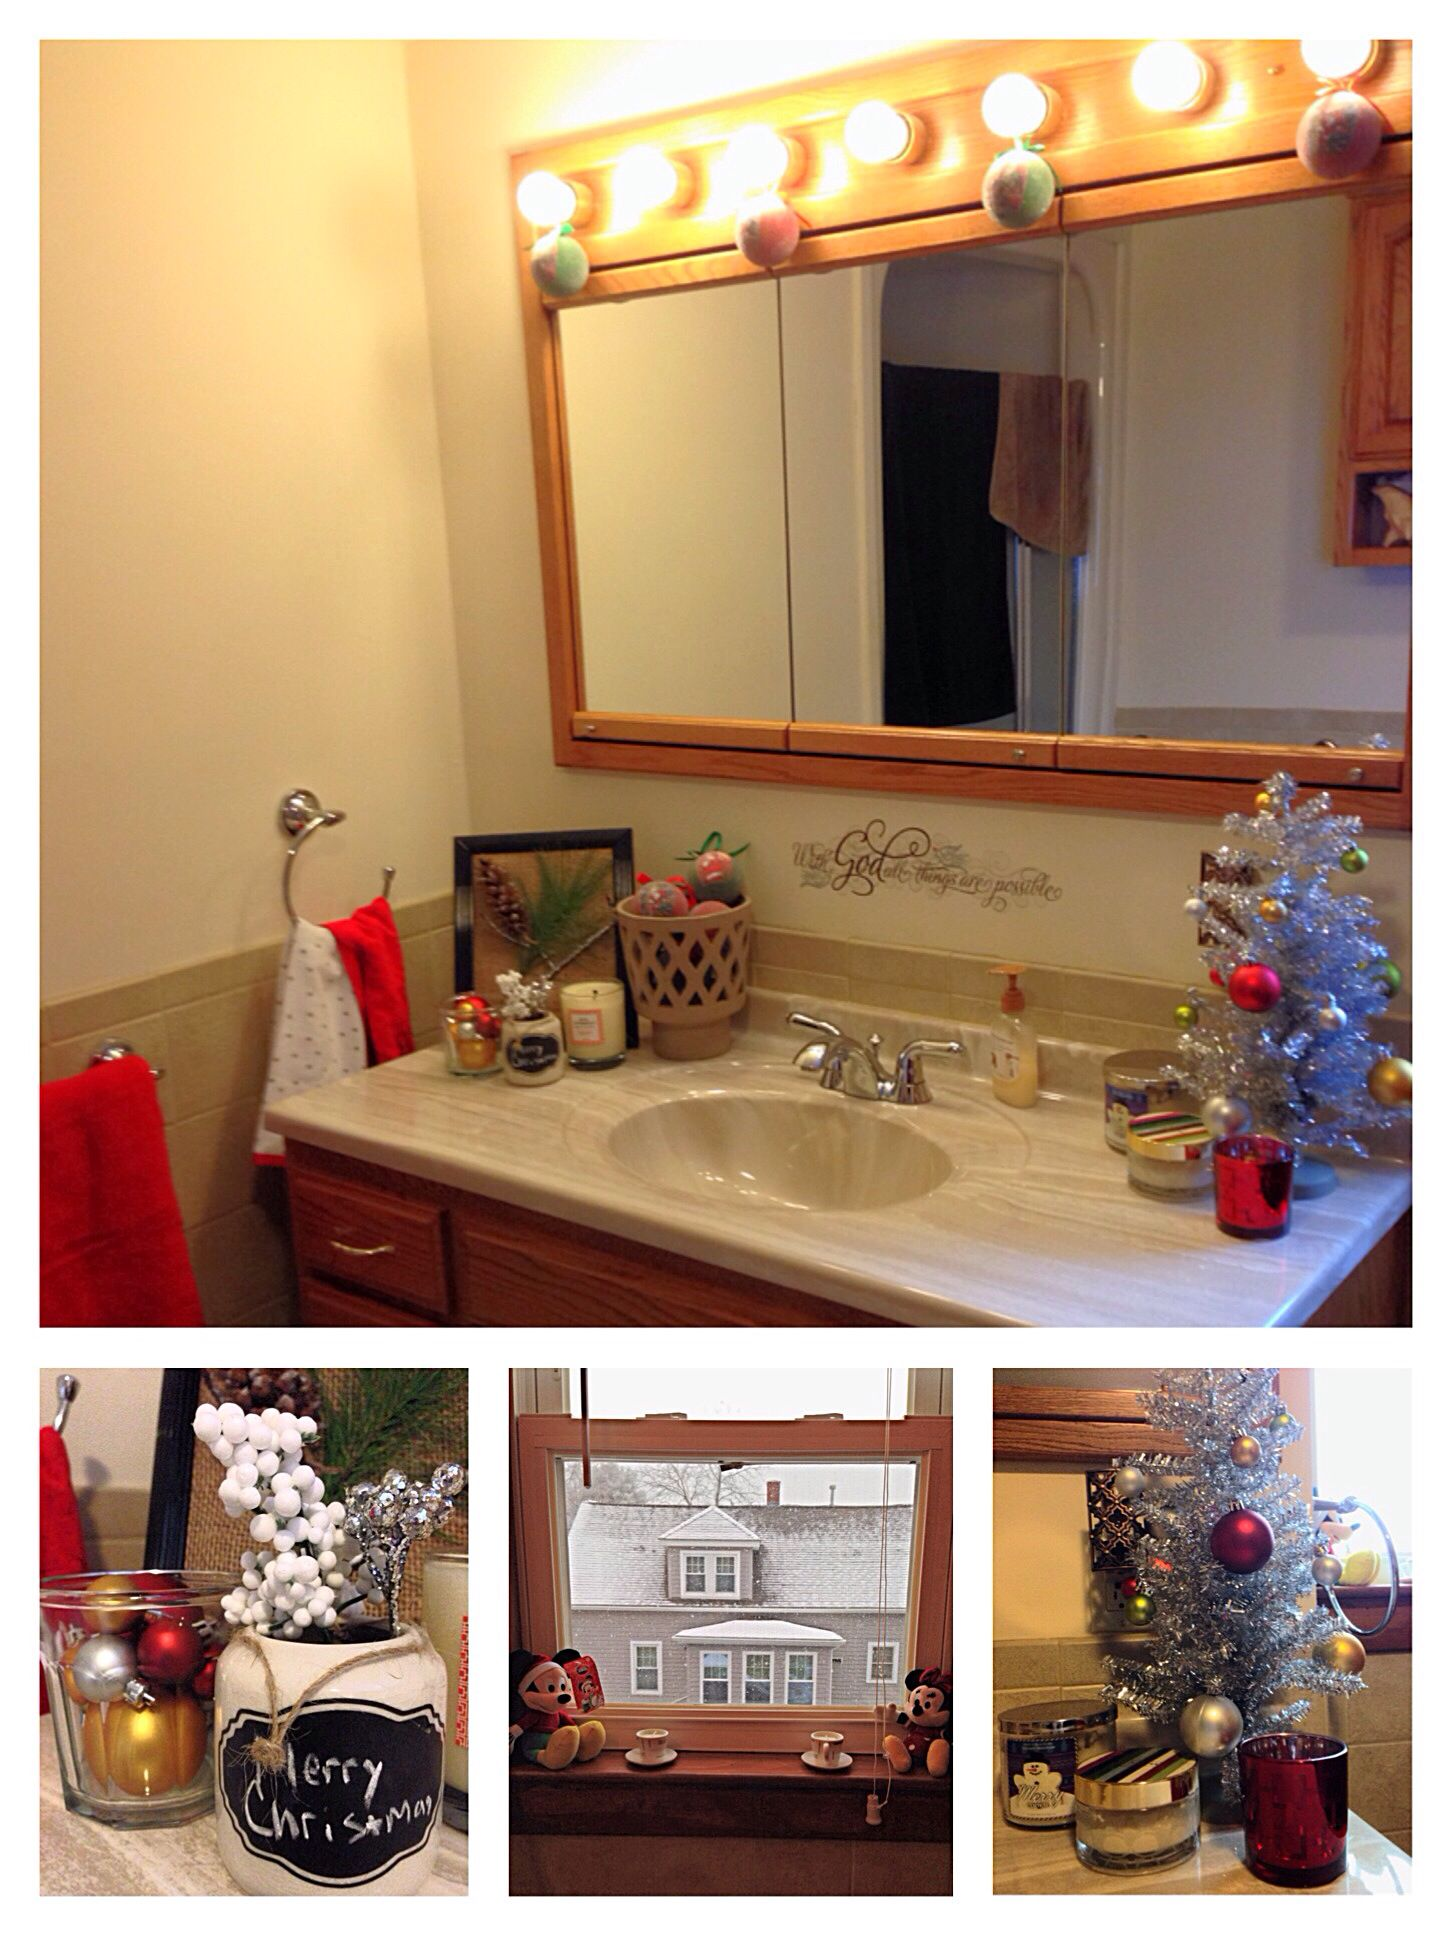 Simple Christmas Bathroom Decor Because Christmas Decor Should Never Be Limited To Just Commo Christmas Bathroom Decor Small Bathroom Decor Christmas Bathroom